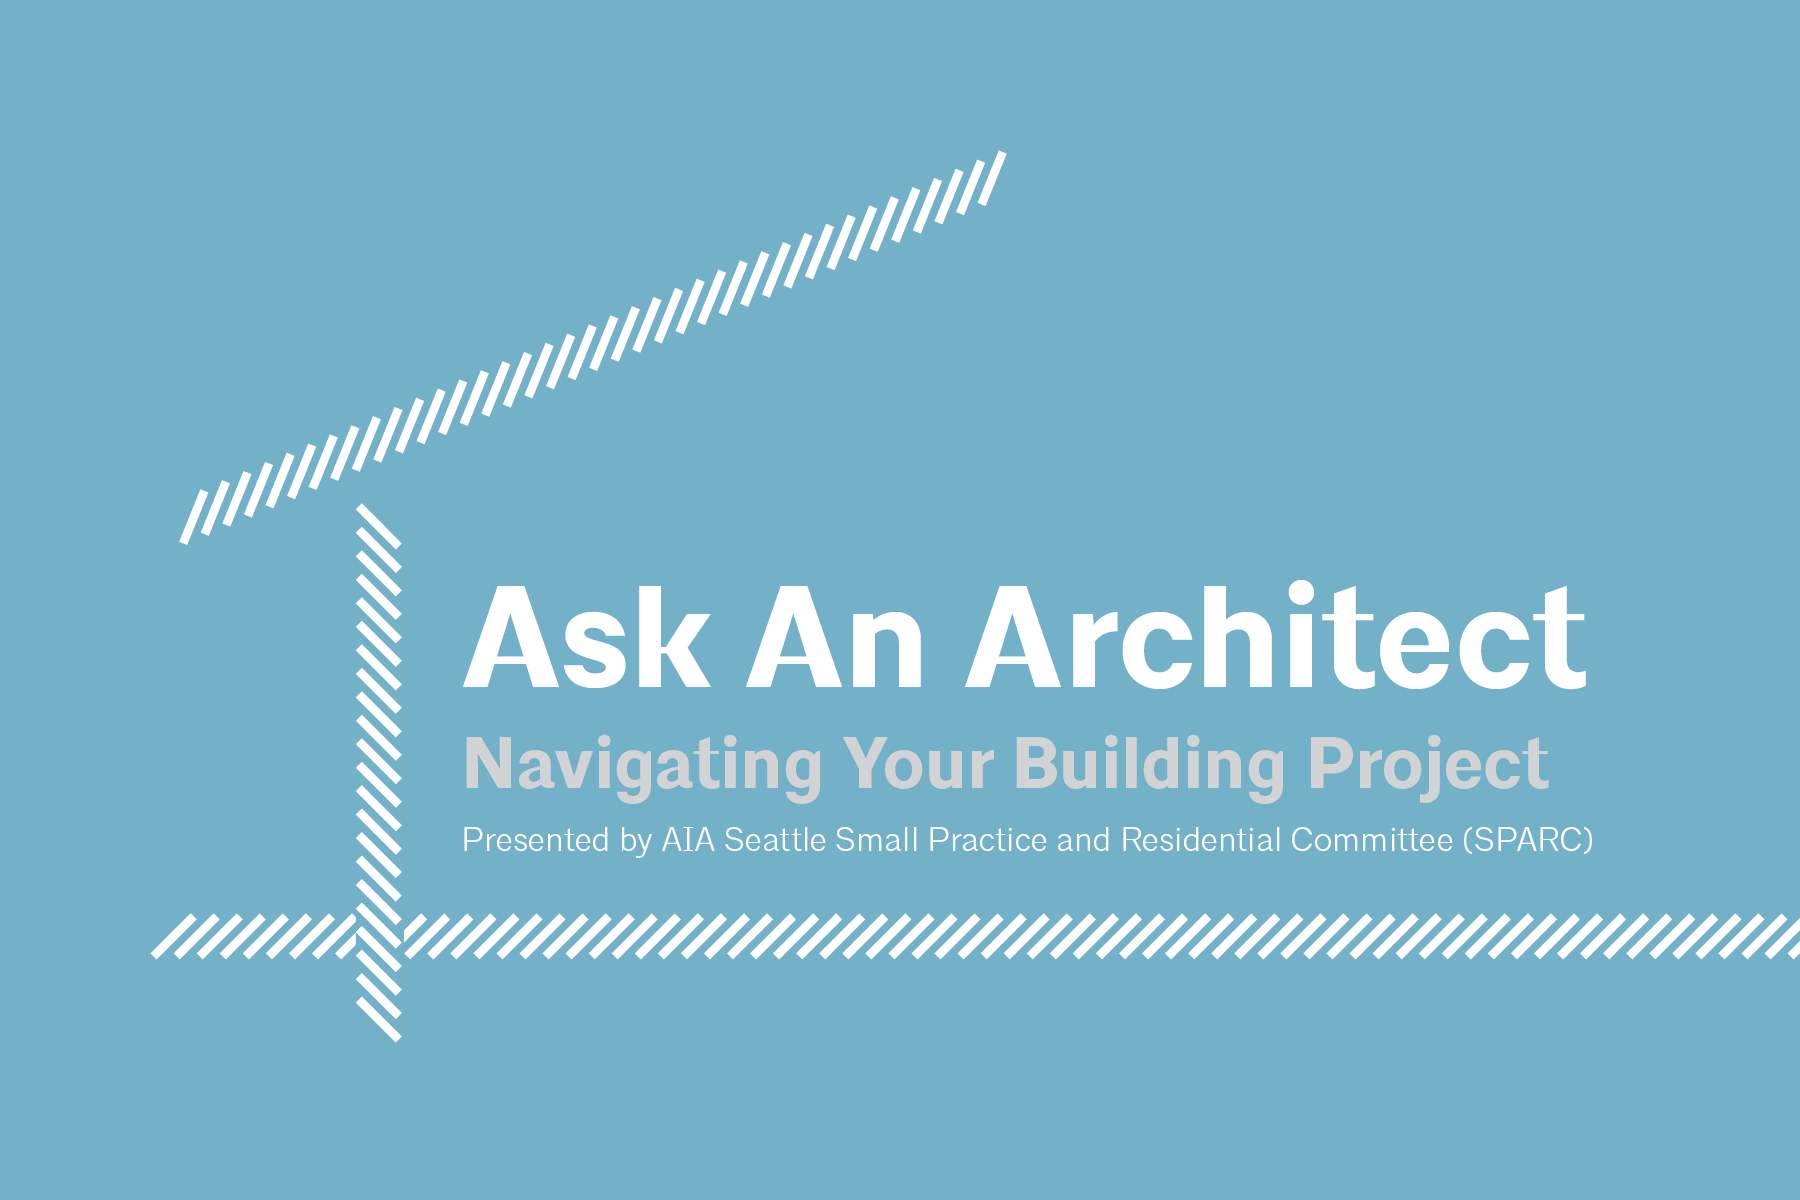 Dreaming about a home design project and not sure where to start? Wondering how to make the most of your budget? Curious about green design or how to plan for your family's changing needs?